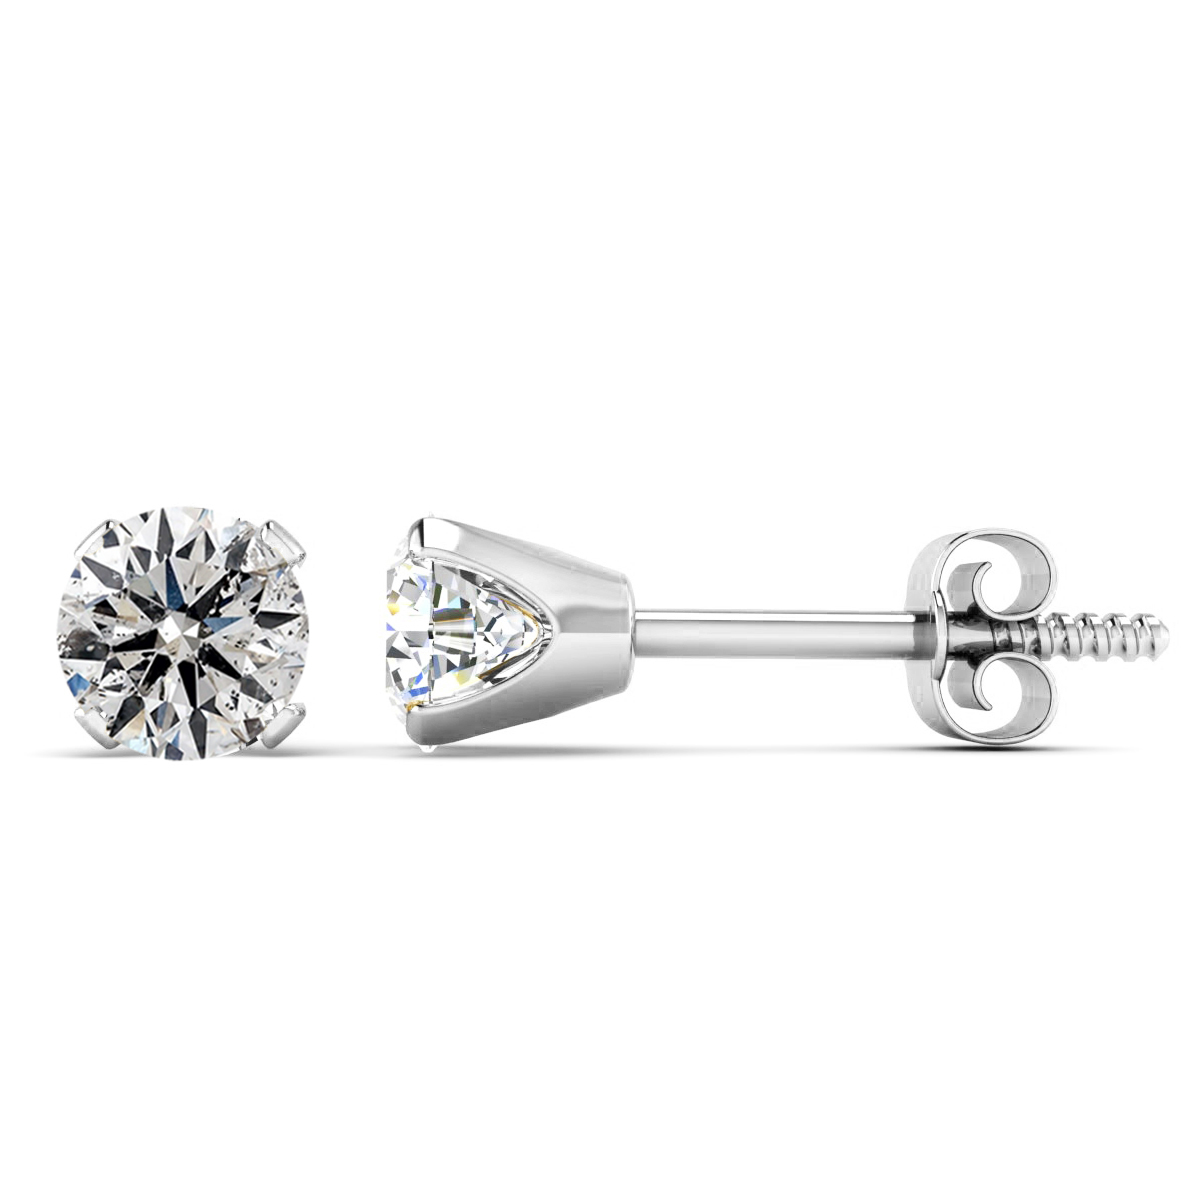 09020c1d4 1/2ct Diamond Stud Earrings in 14k White Gold | SuperJeweler.com